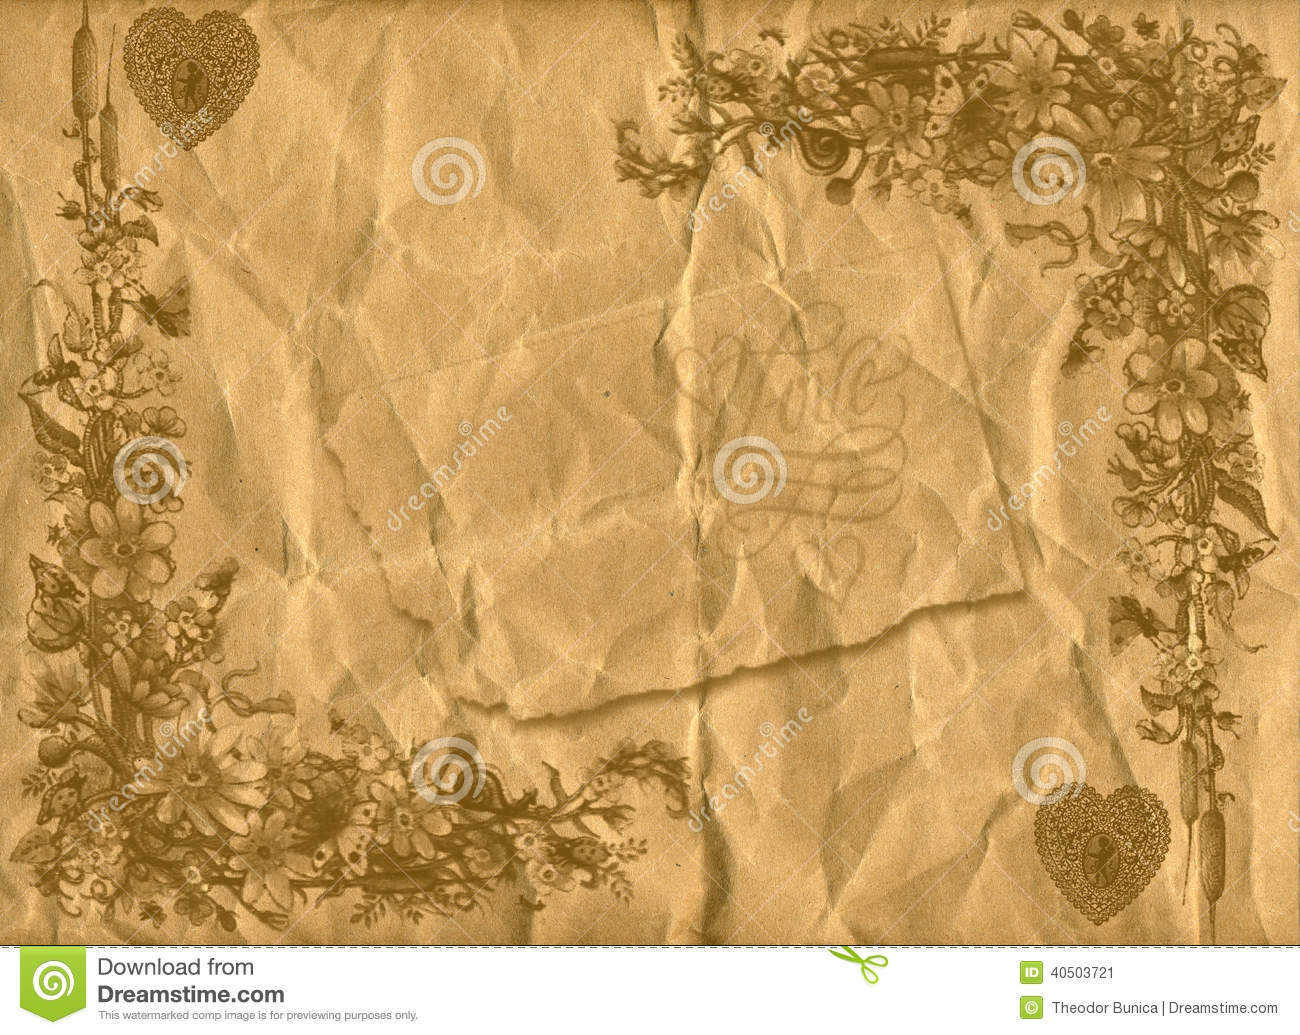 old paper style 4,129 best old style paper free stock photos download for commercial use in hd high resolution jpg images format old style paper, free stock photos, old style paper, old book paper background, old writing paper, old parchment paper, old music paper, old parchment paper background hd, old kraft paper highdefinition, old blank paper, old yellow paper background.